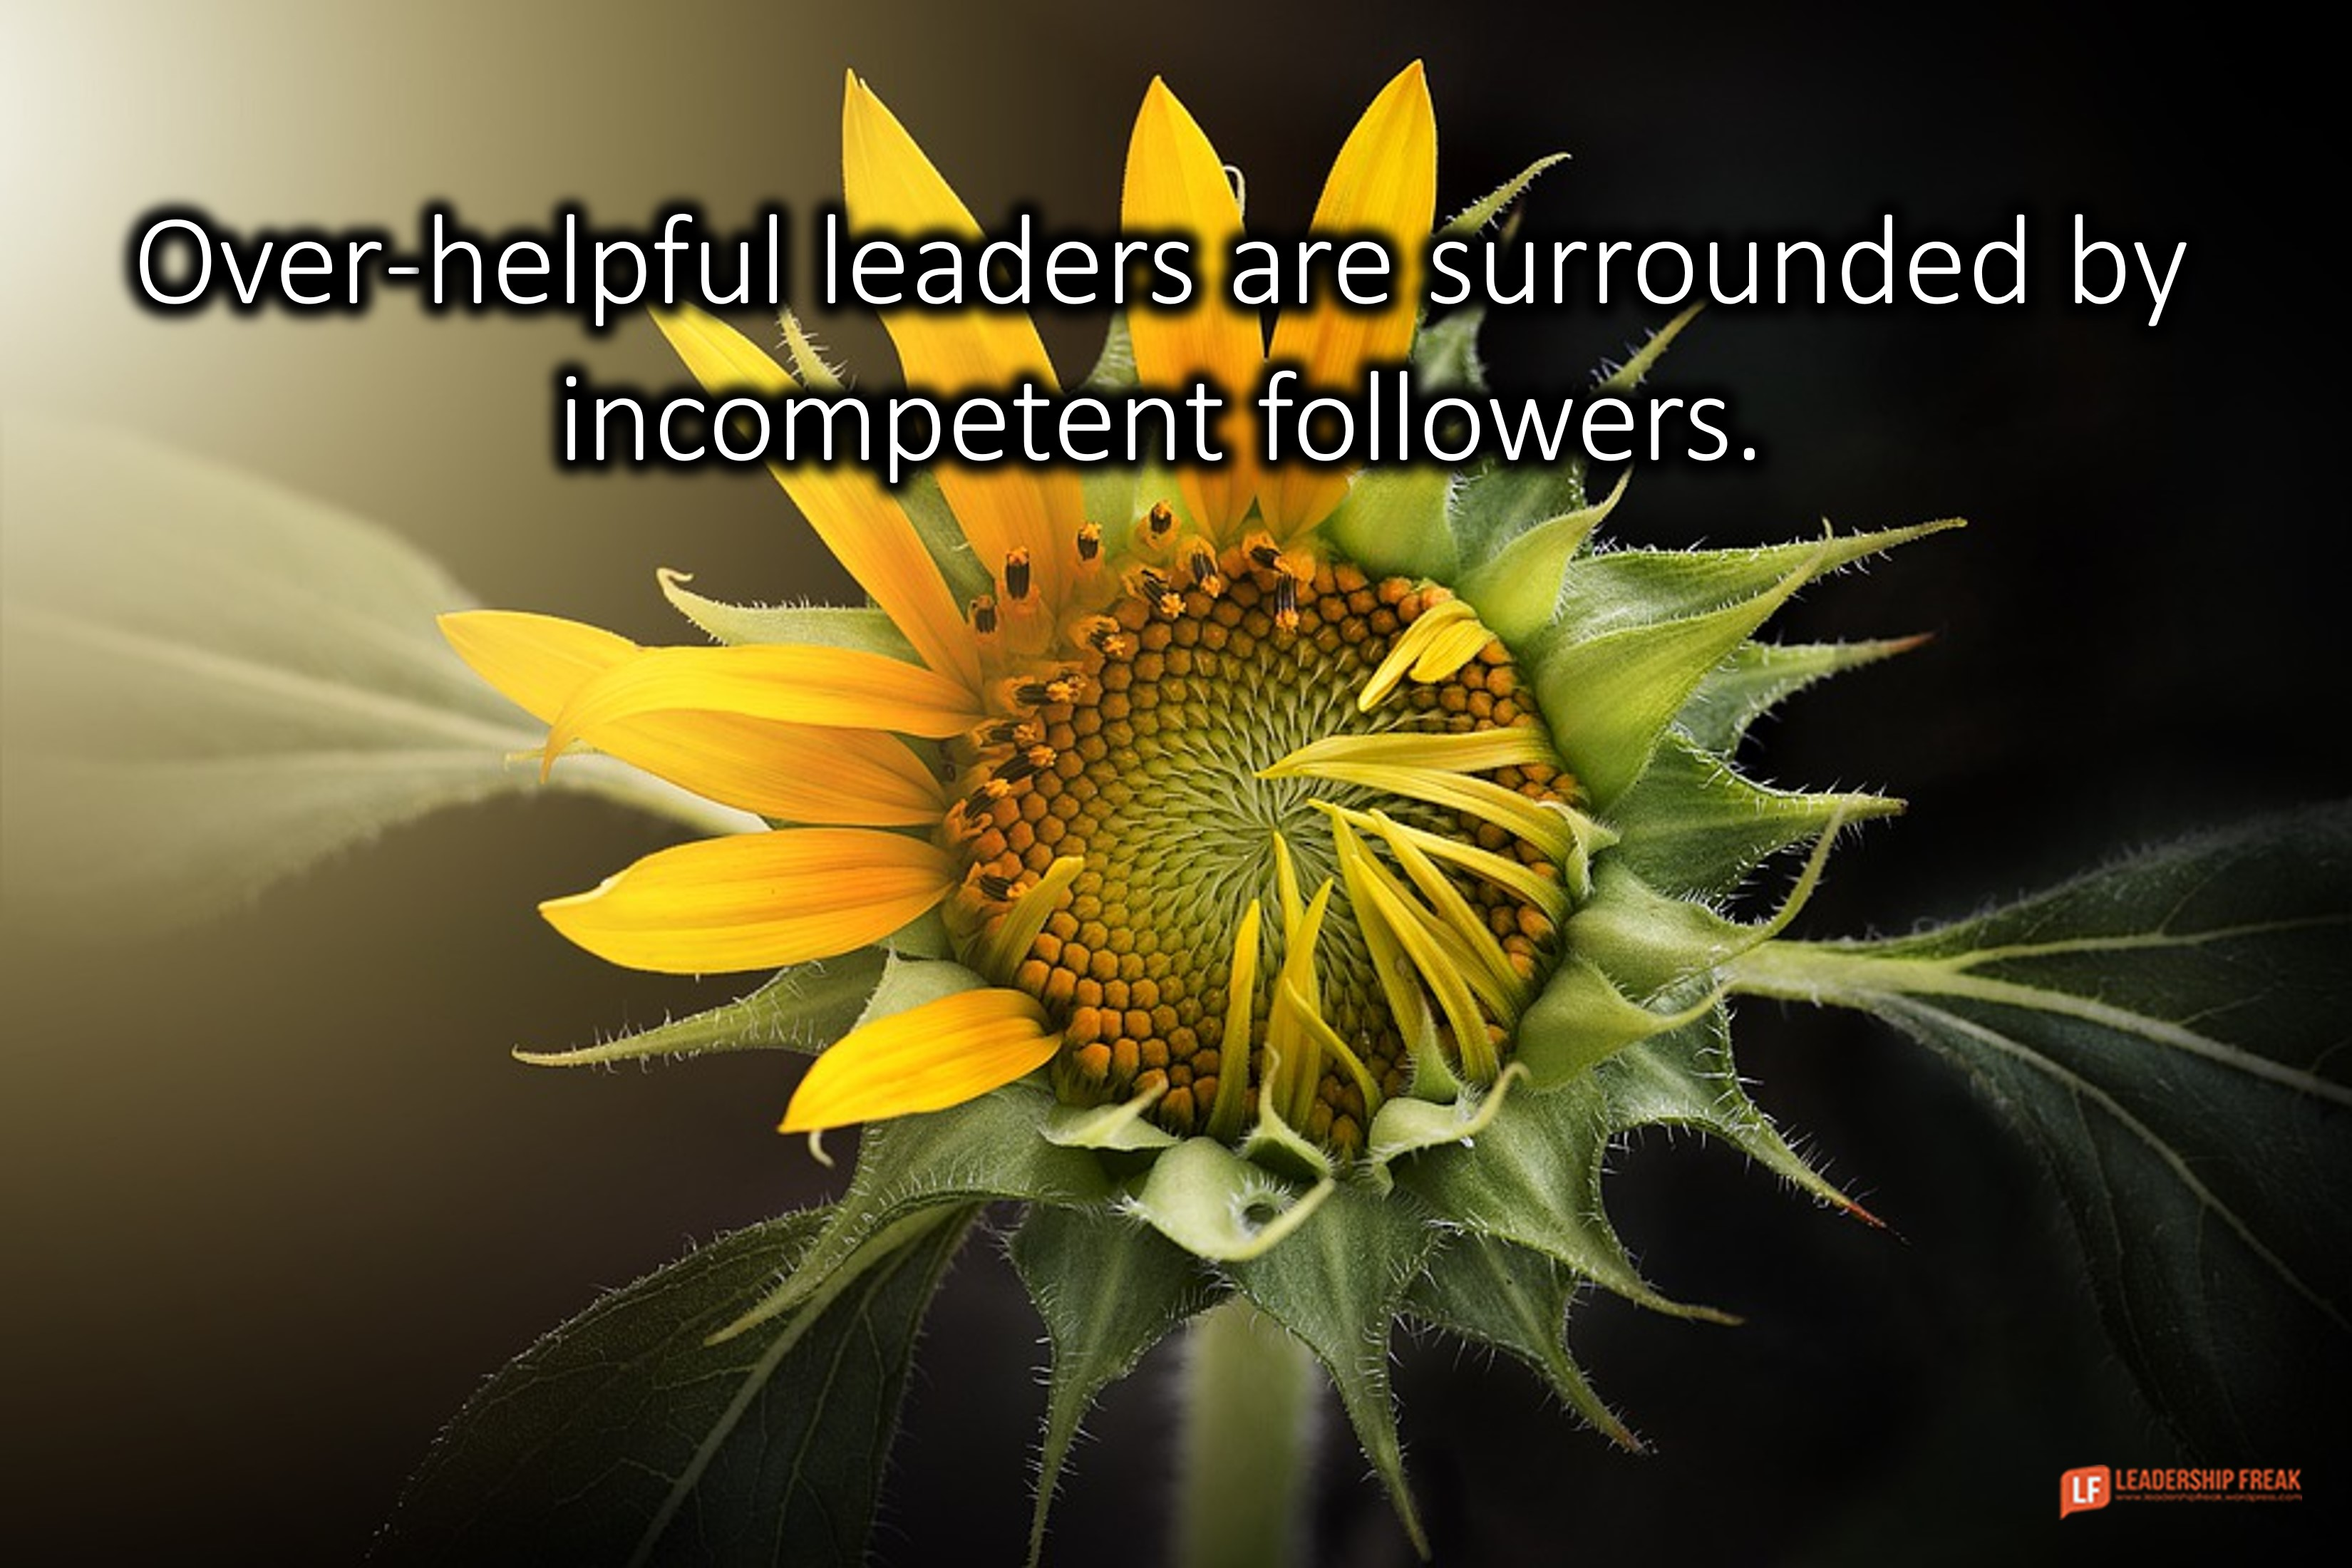 Partially wilted sunflower.  Over-helpful leaders are surrounded by incompetent followers.